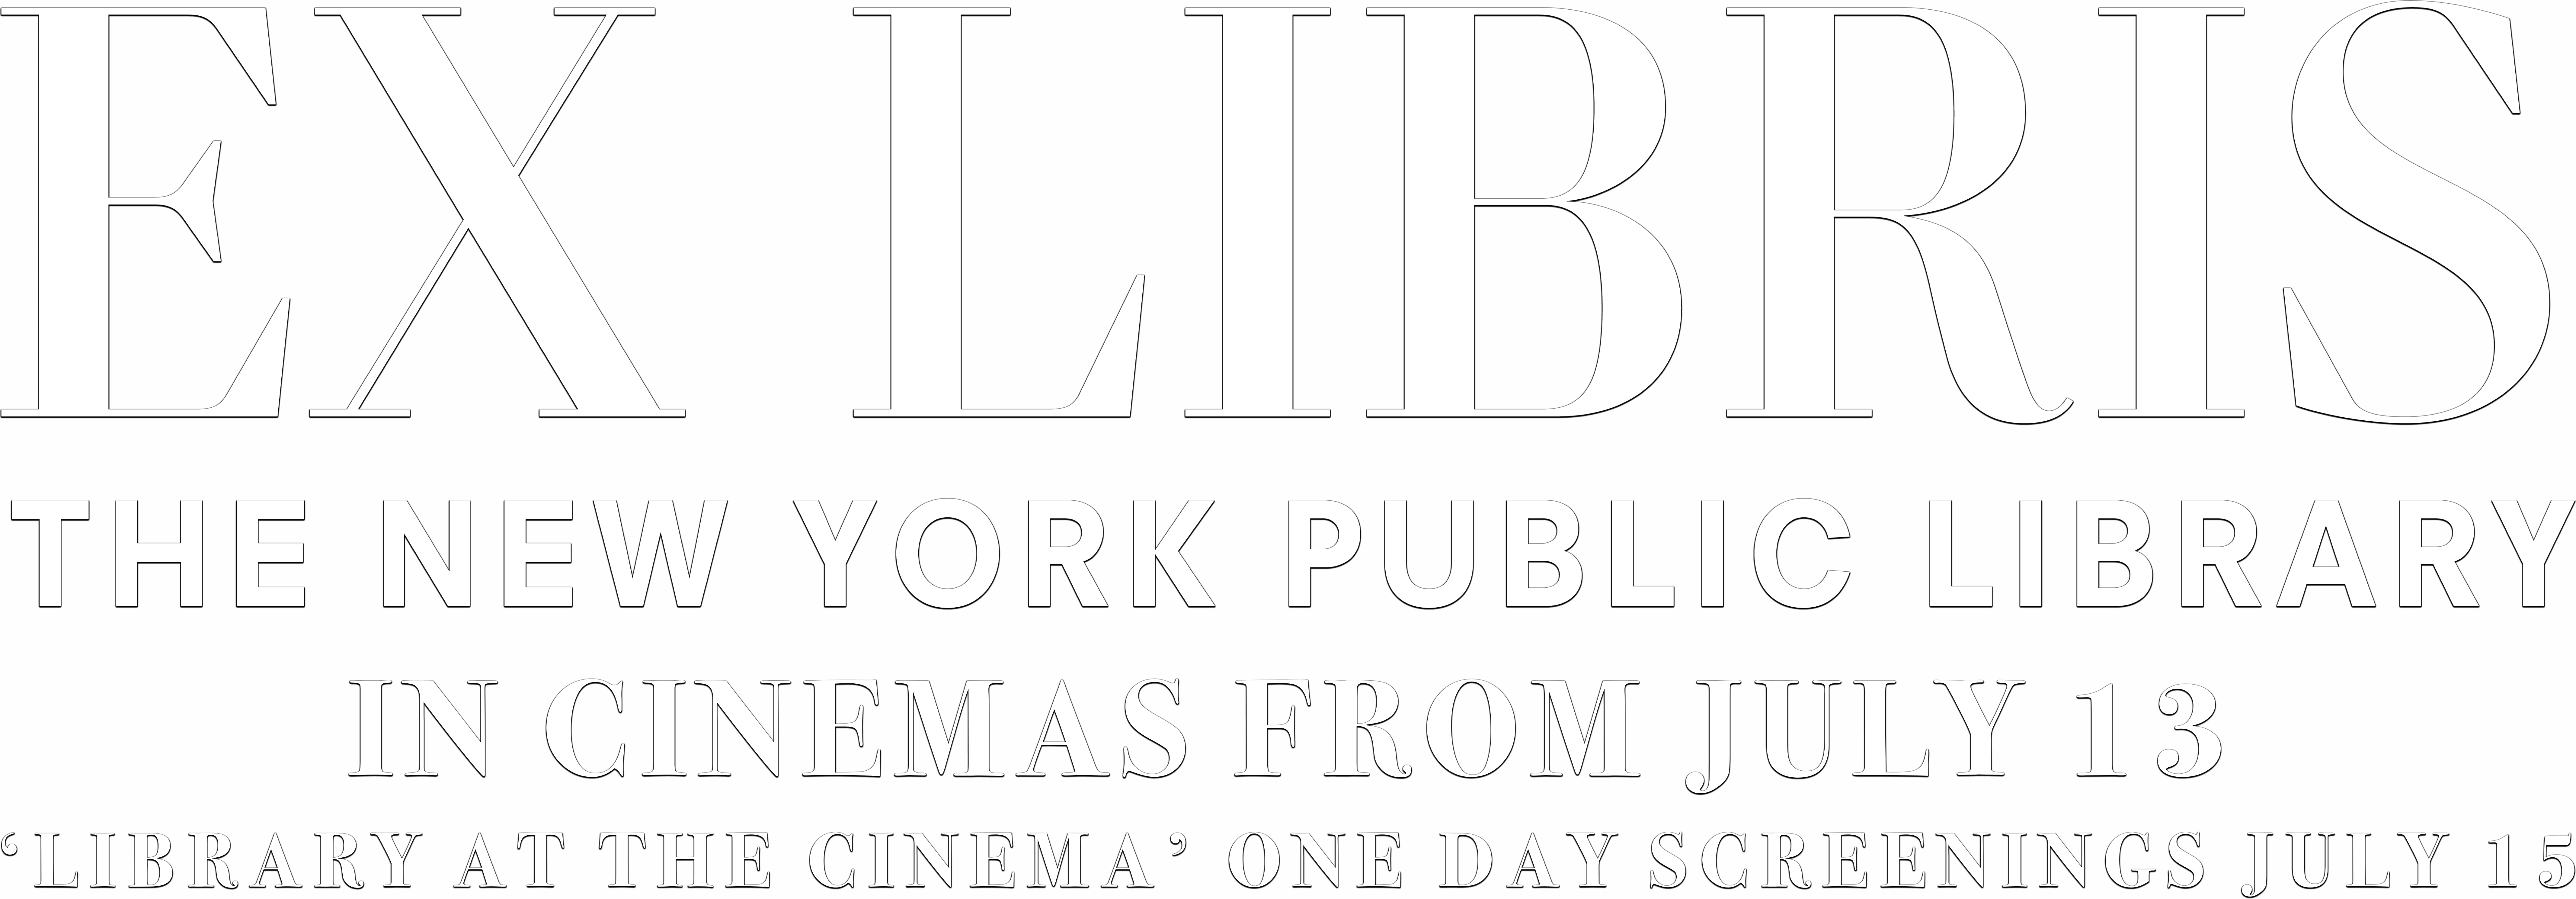 EX LIBRIS - THE NEW YORK PUBLIC LIBRARY : Synopsis | Modern Films